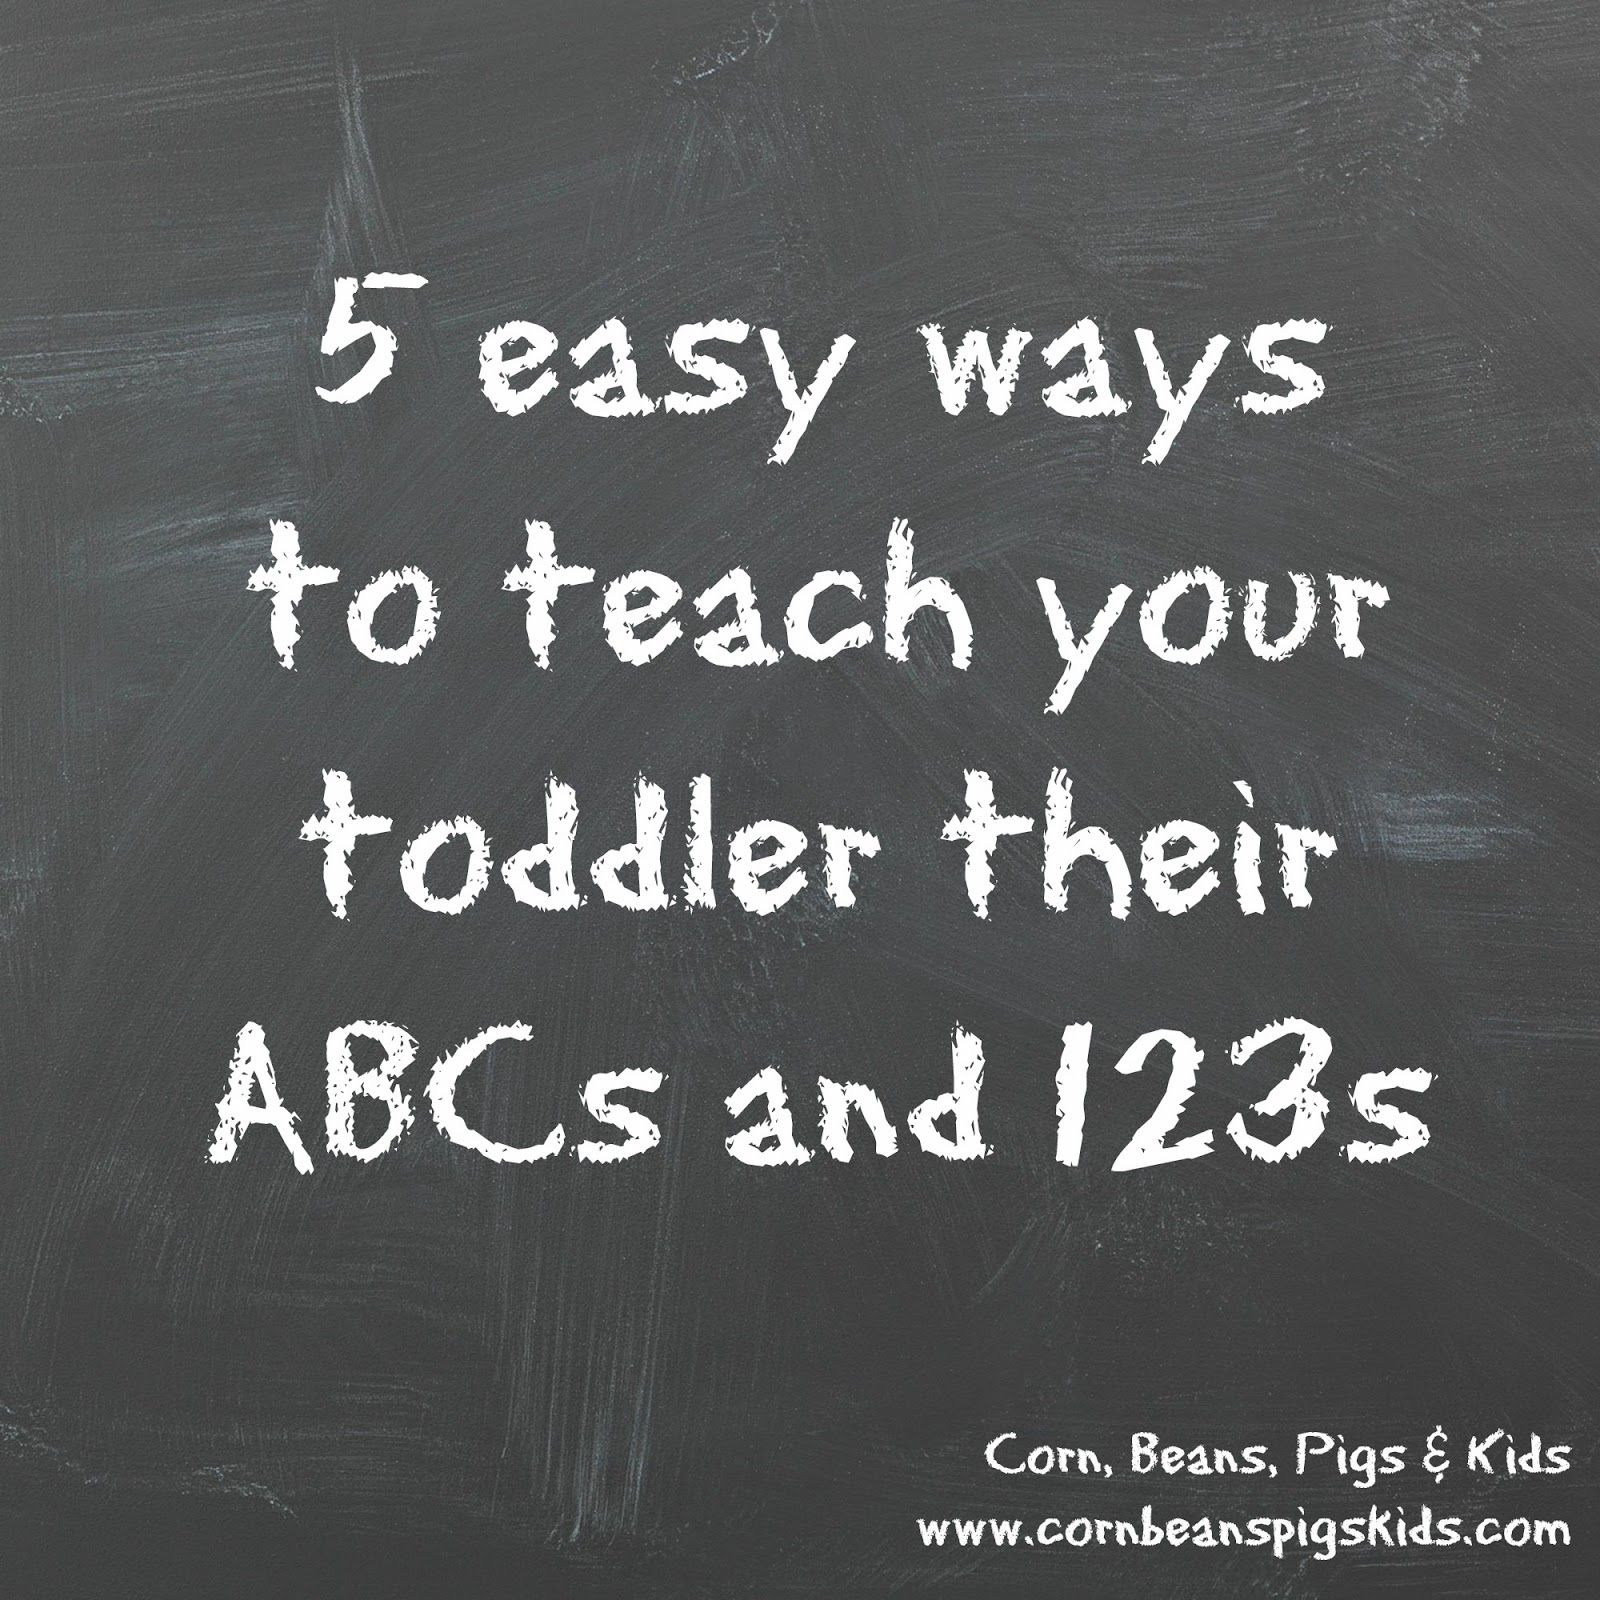 5 Easy Ways To Teach Your Toddler Their Abcs And 123s